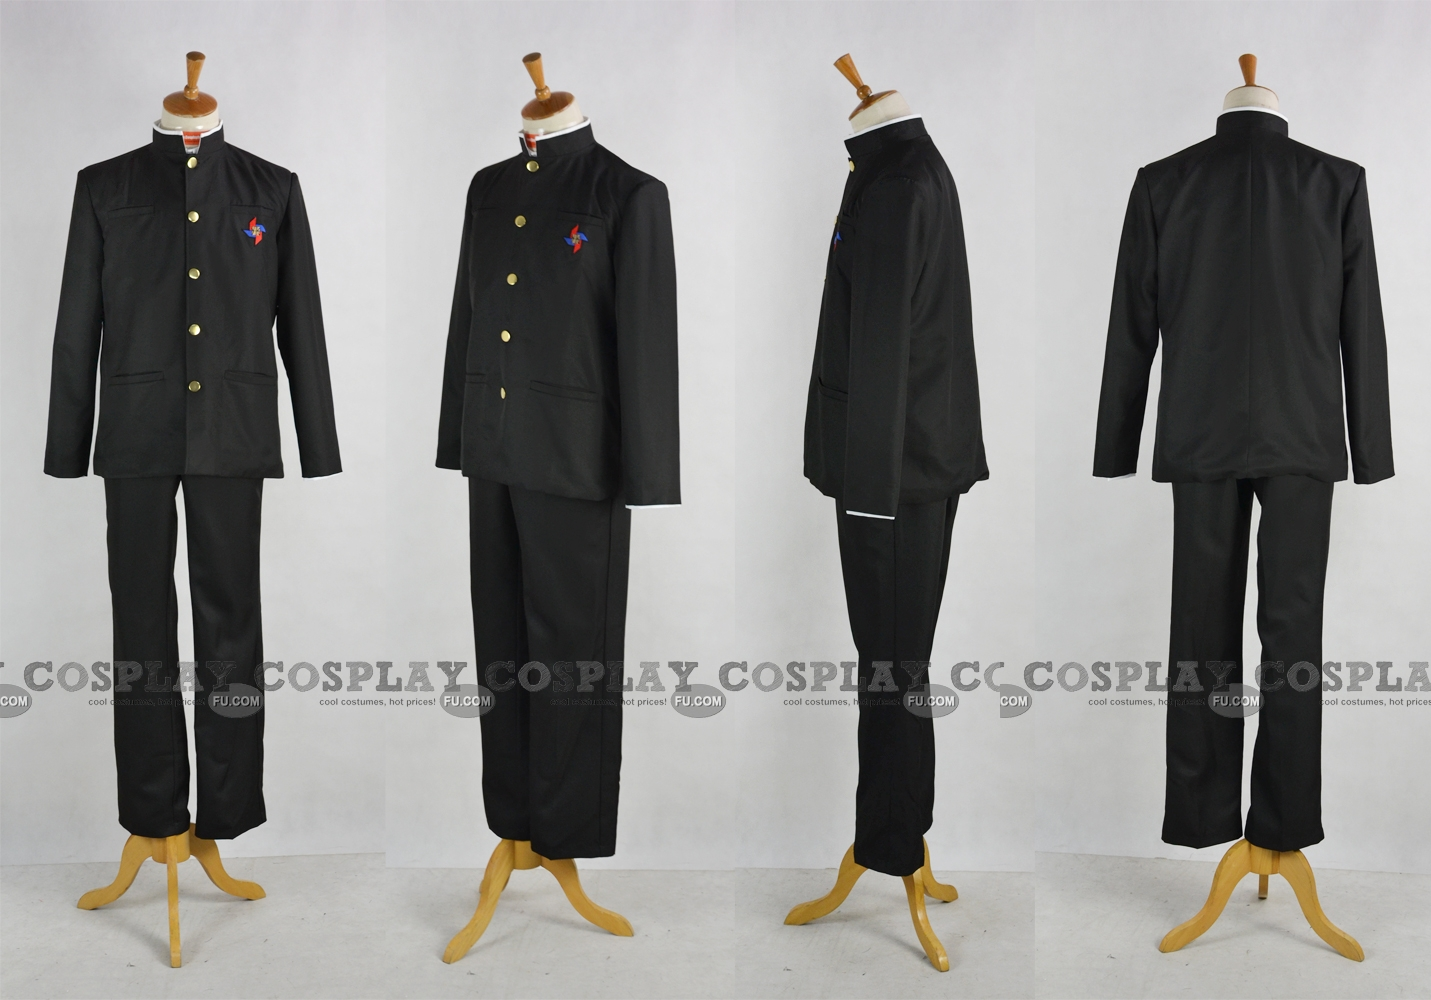 Kouichi Cosplay Costume from Another